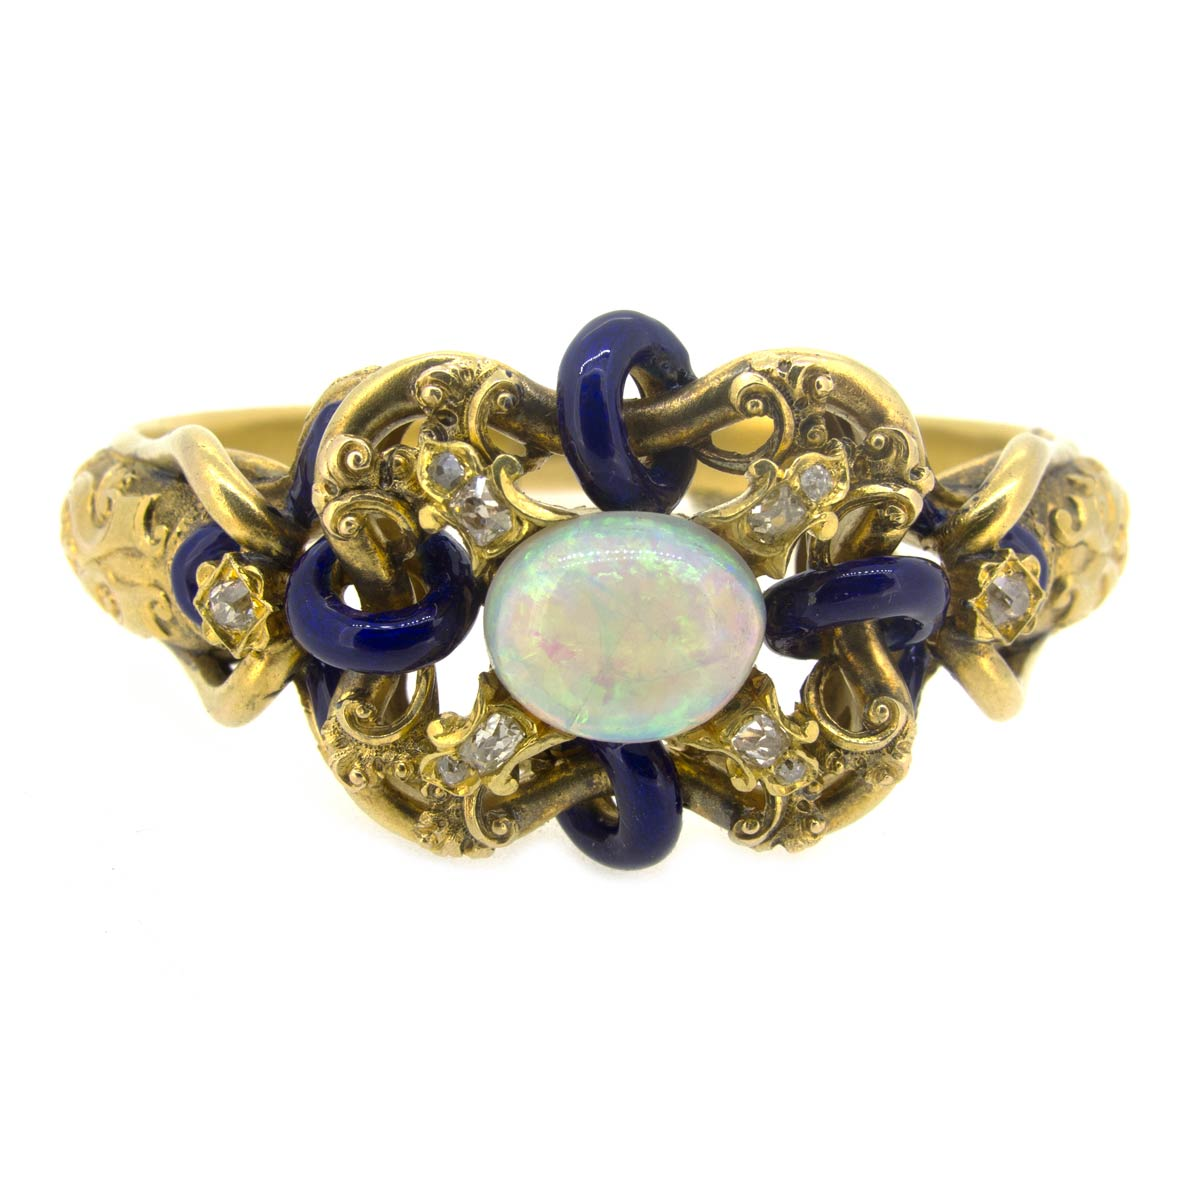 Antique Opal, Diamond & Enamel Bangle